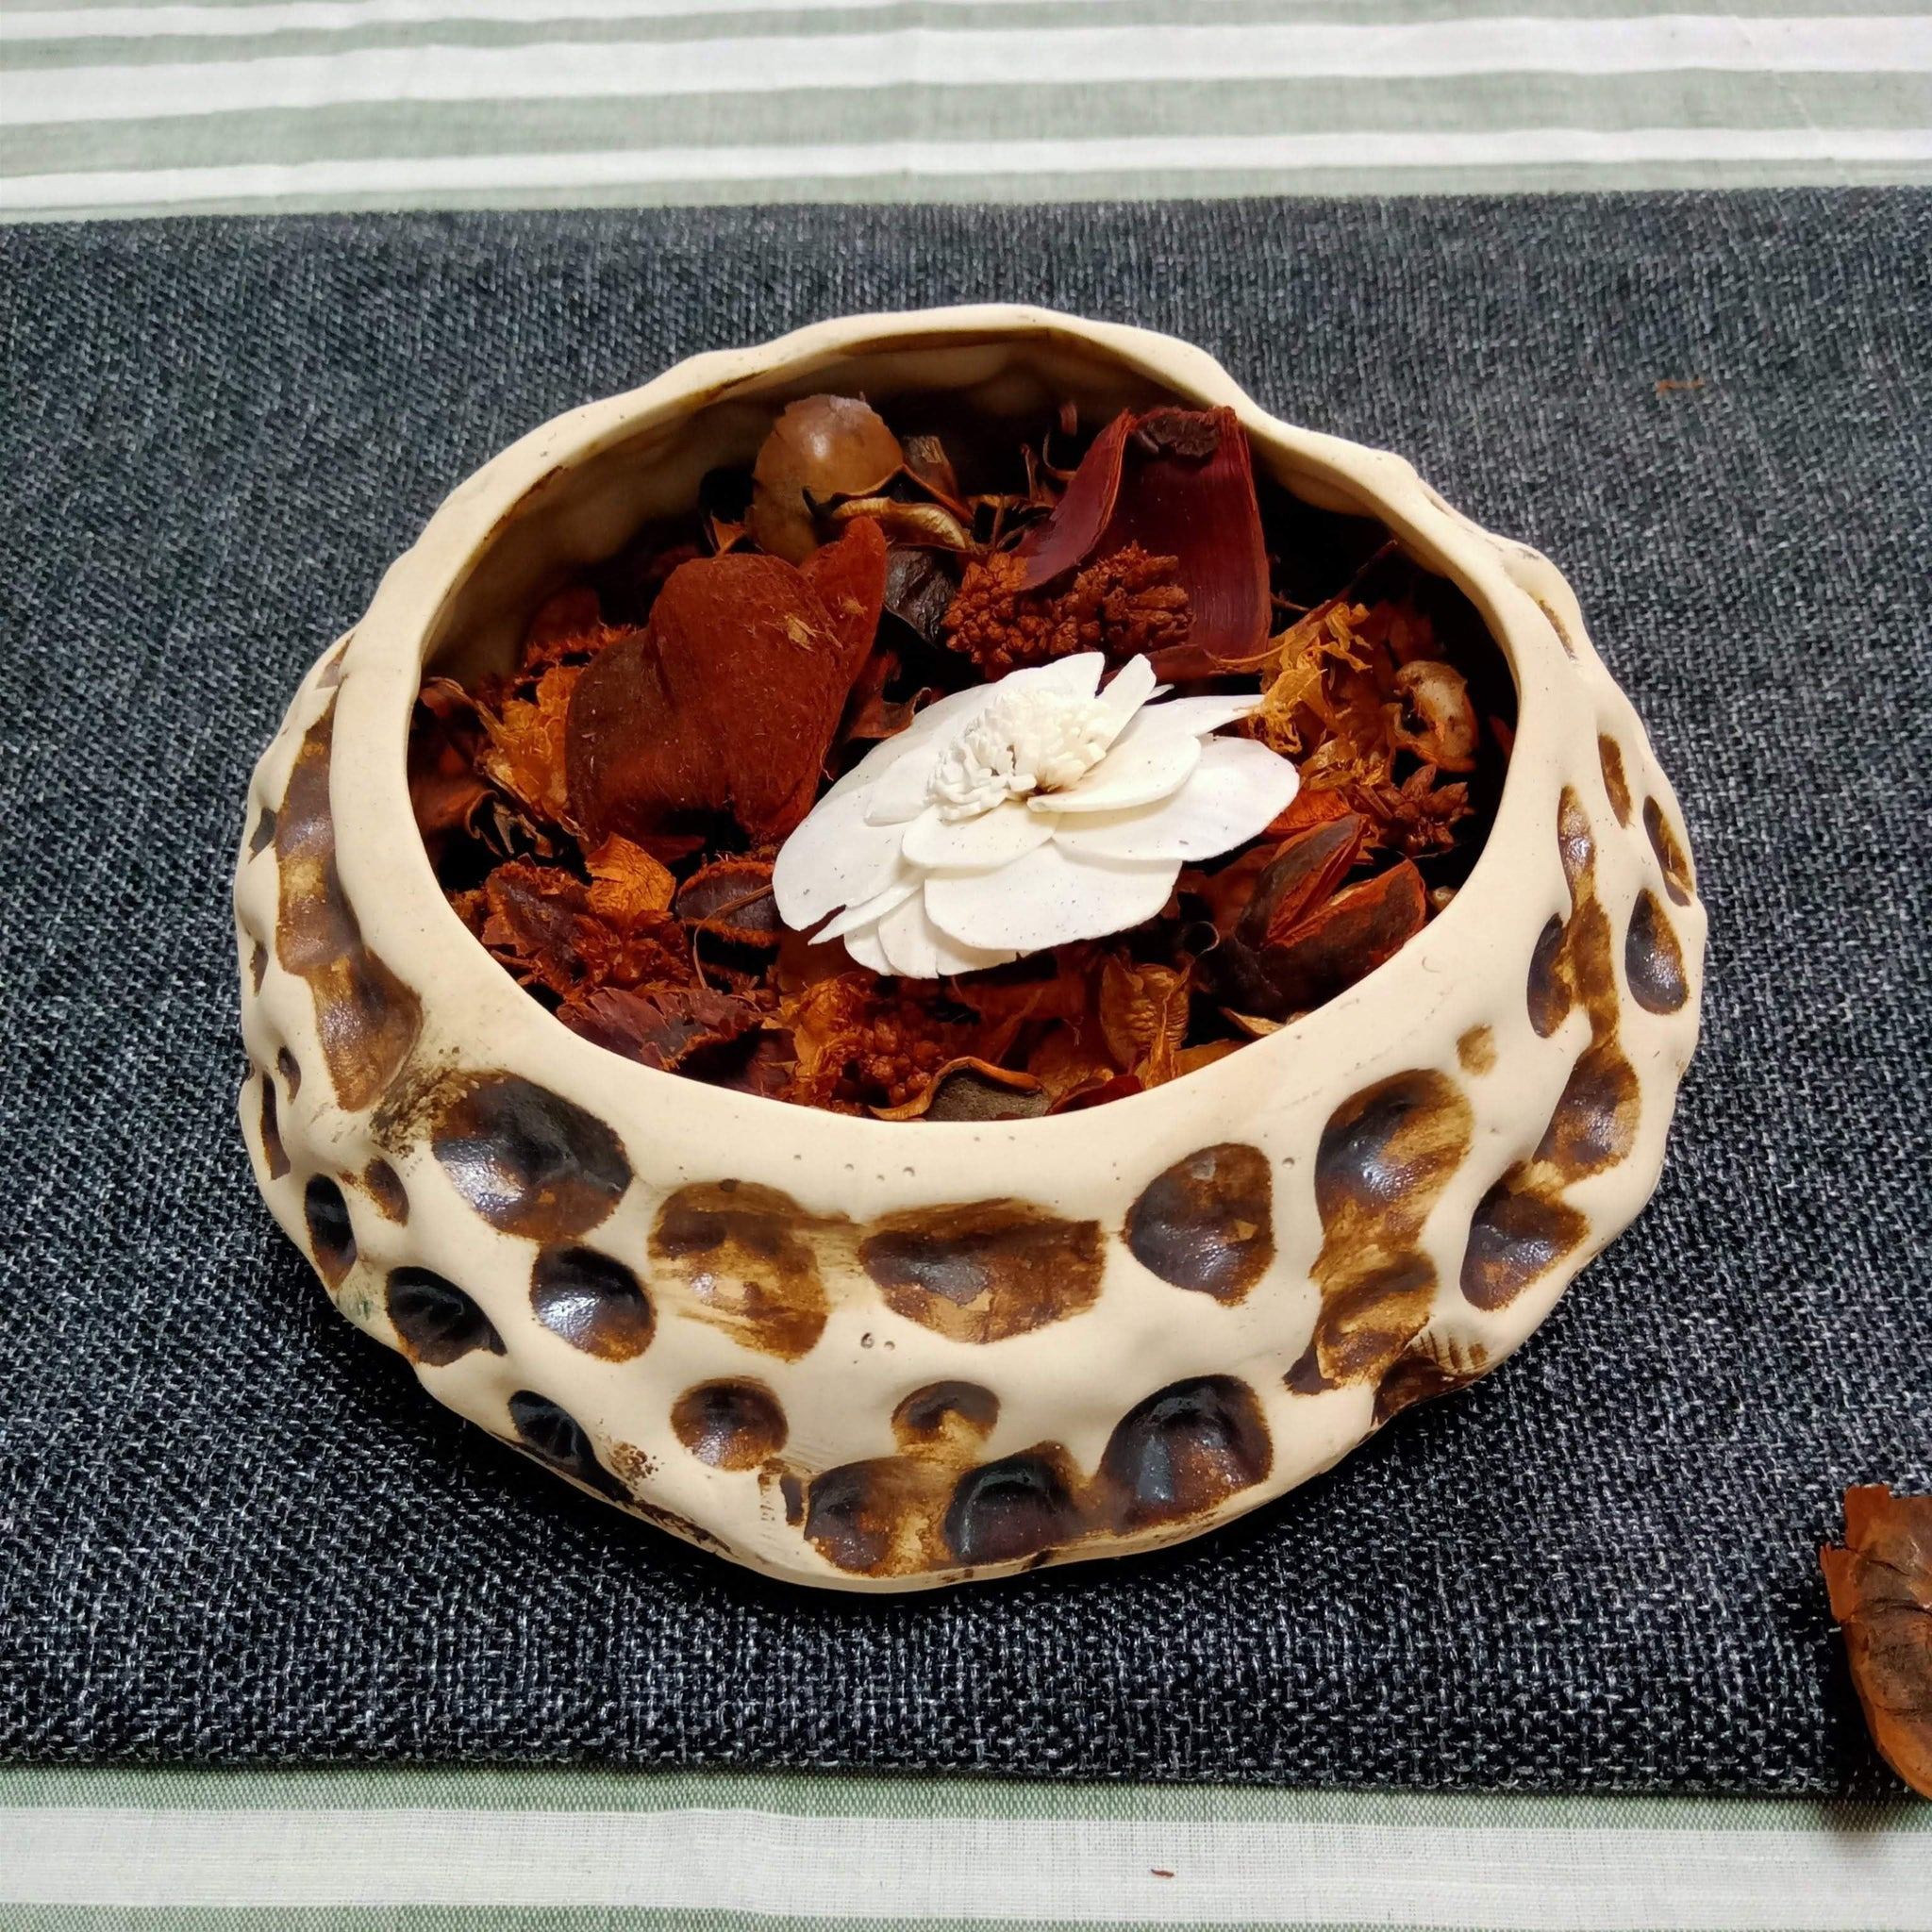 Handmade Ceramic Potpourri Decorative Bowl With Potpourri